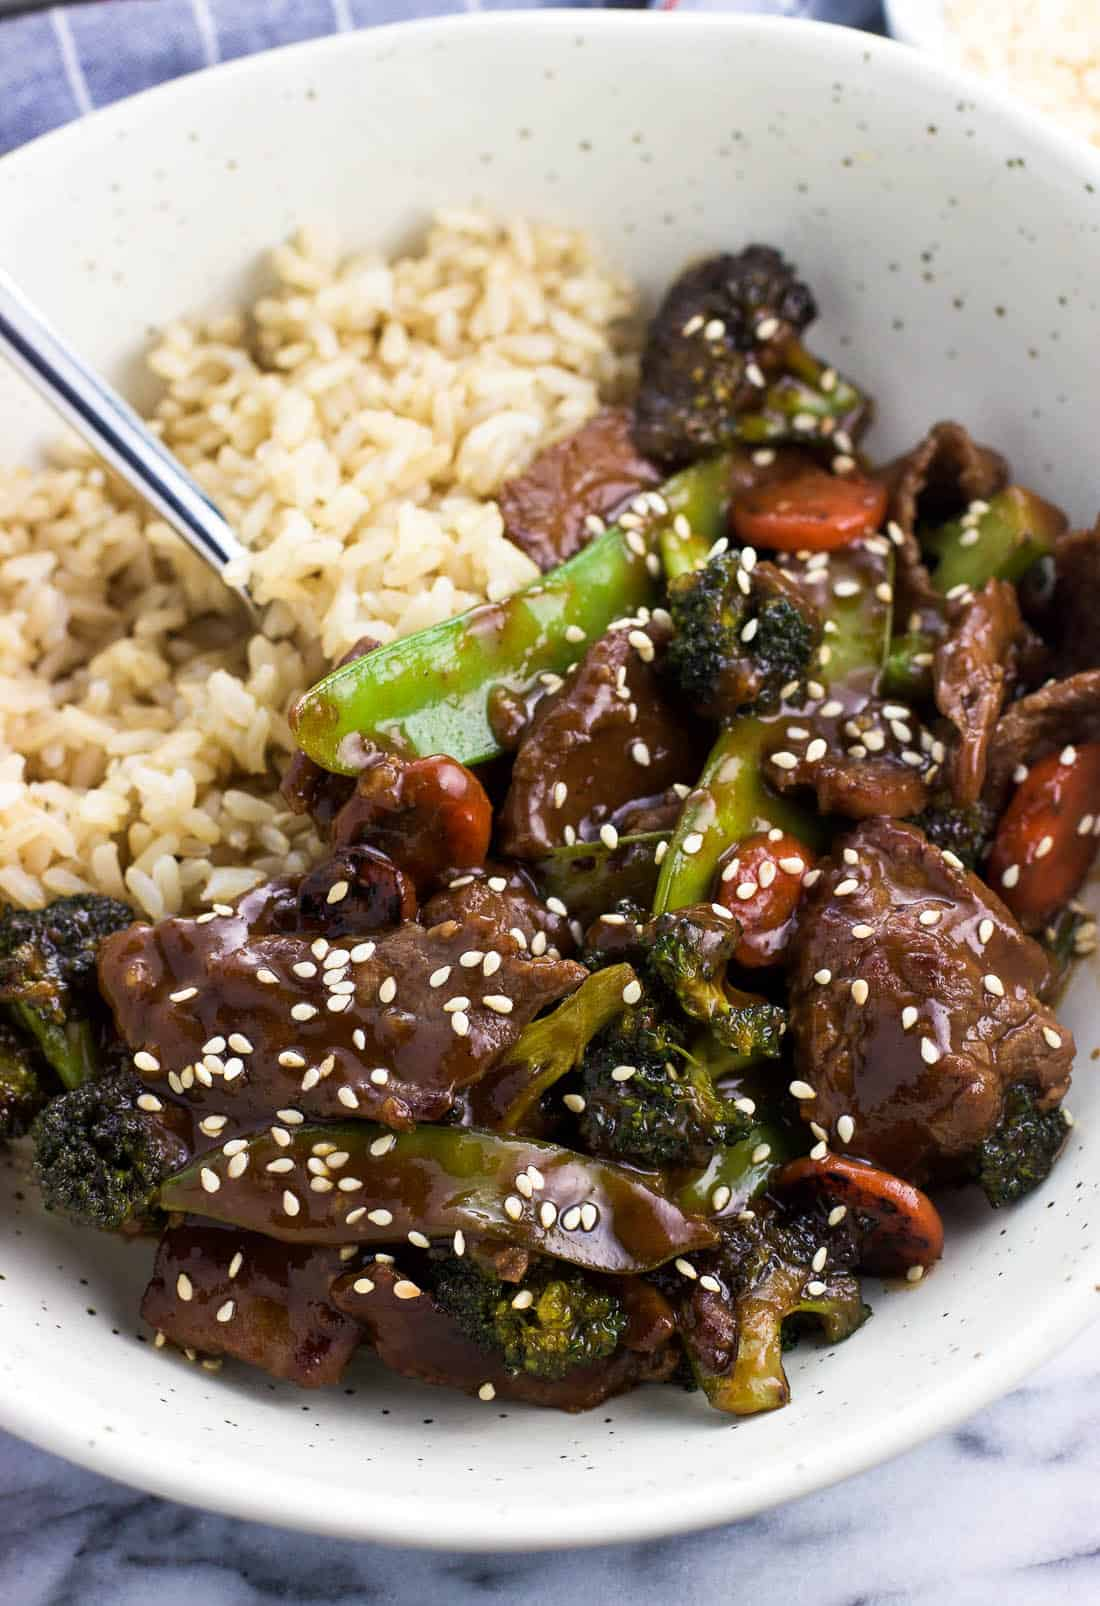 Beef and mixed vegetable stir fry in a bowl served beside brown rice.